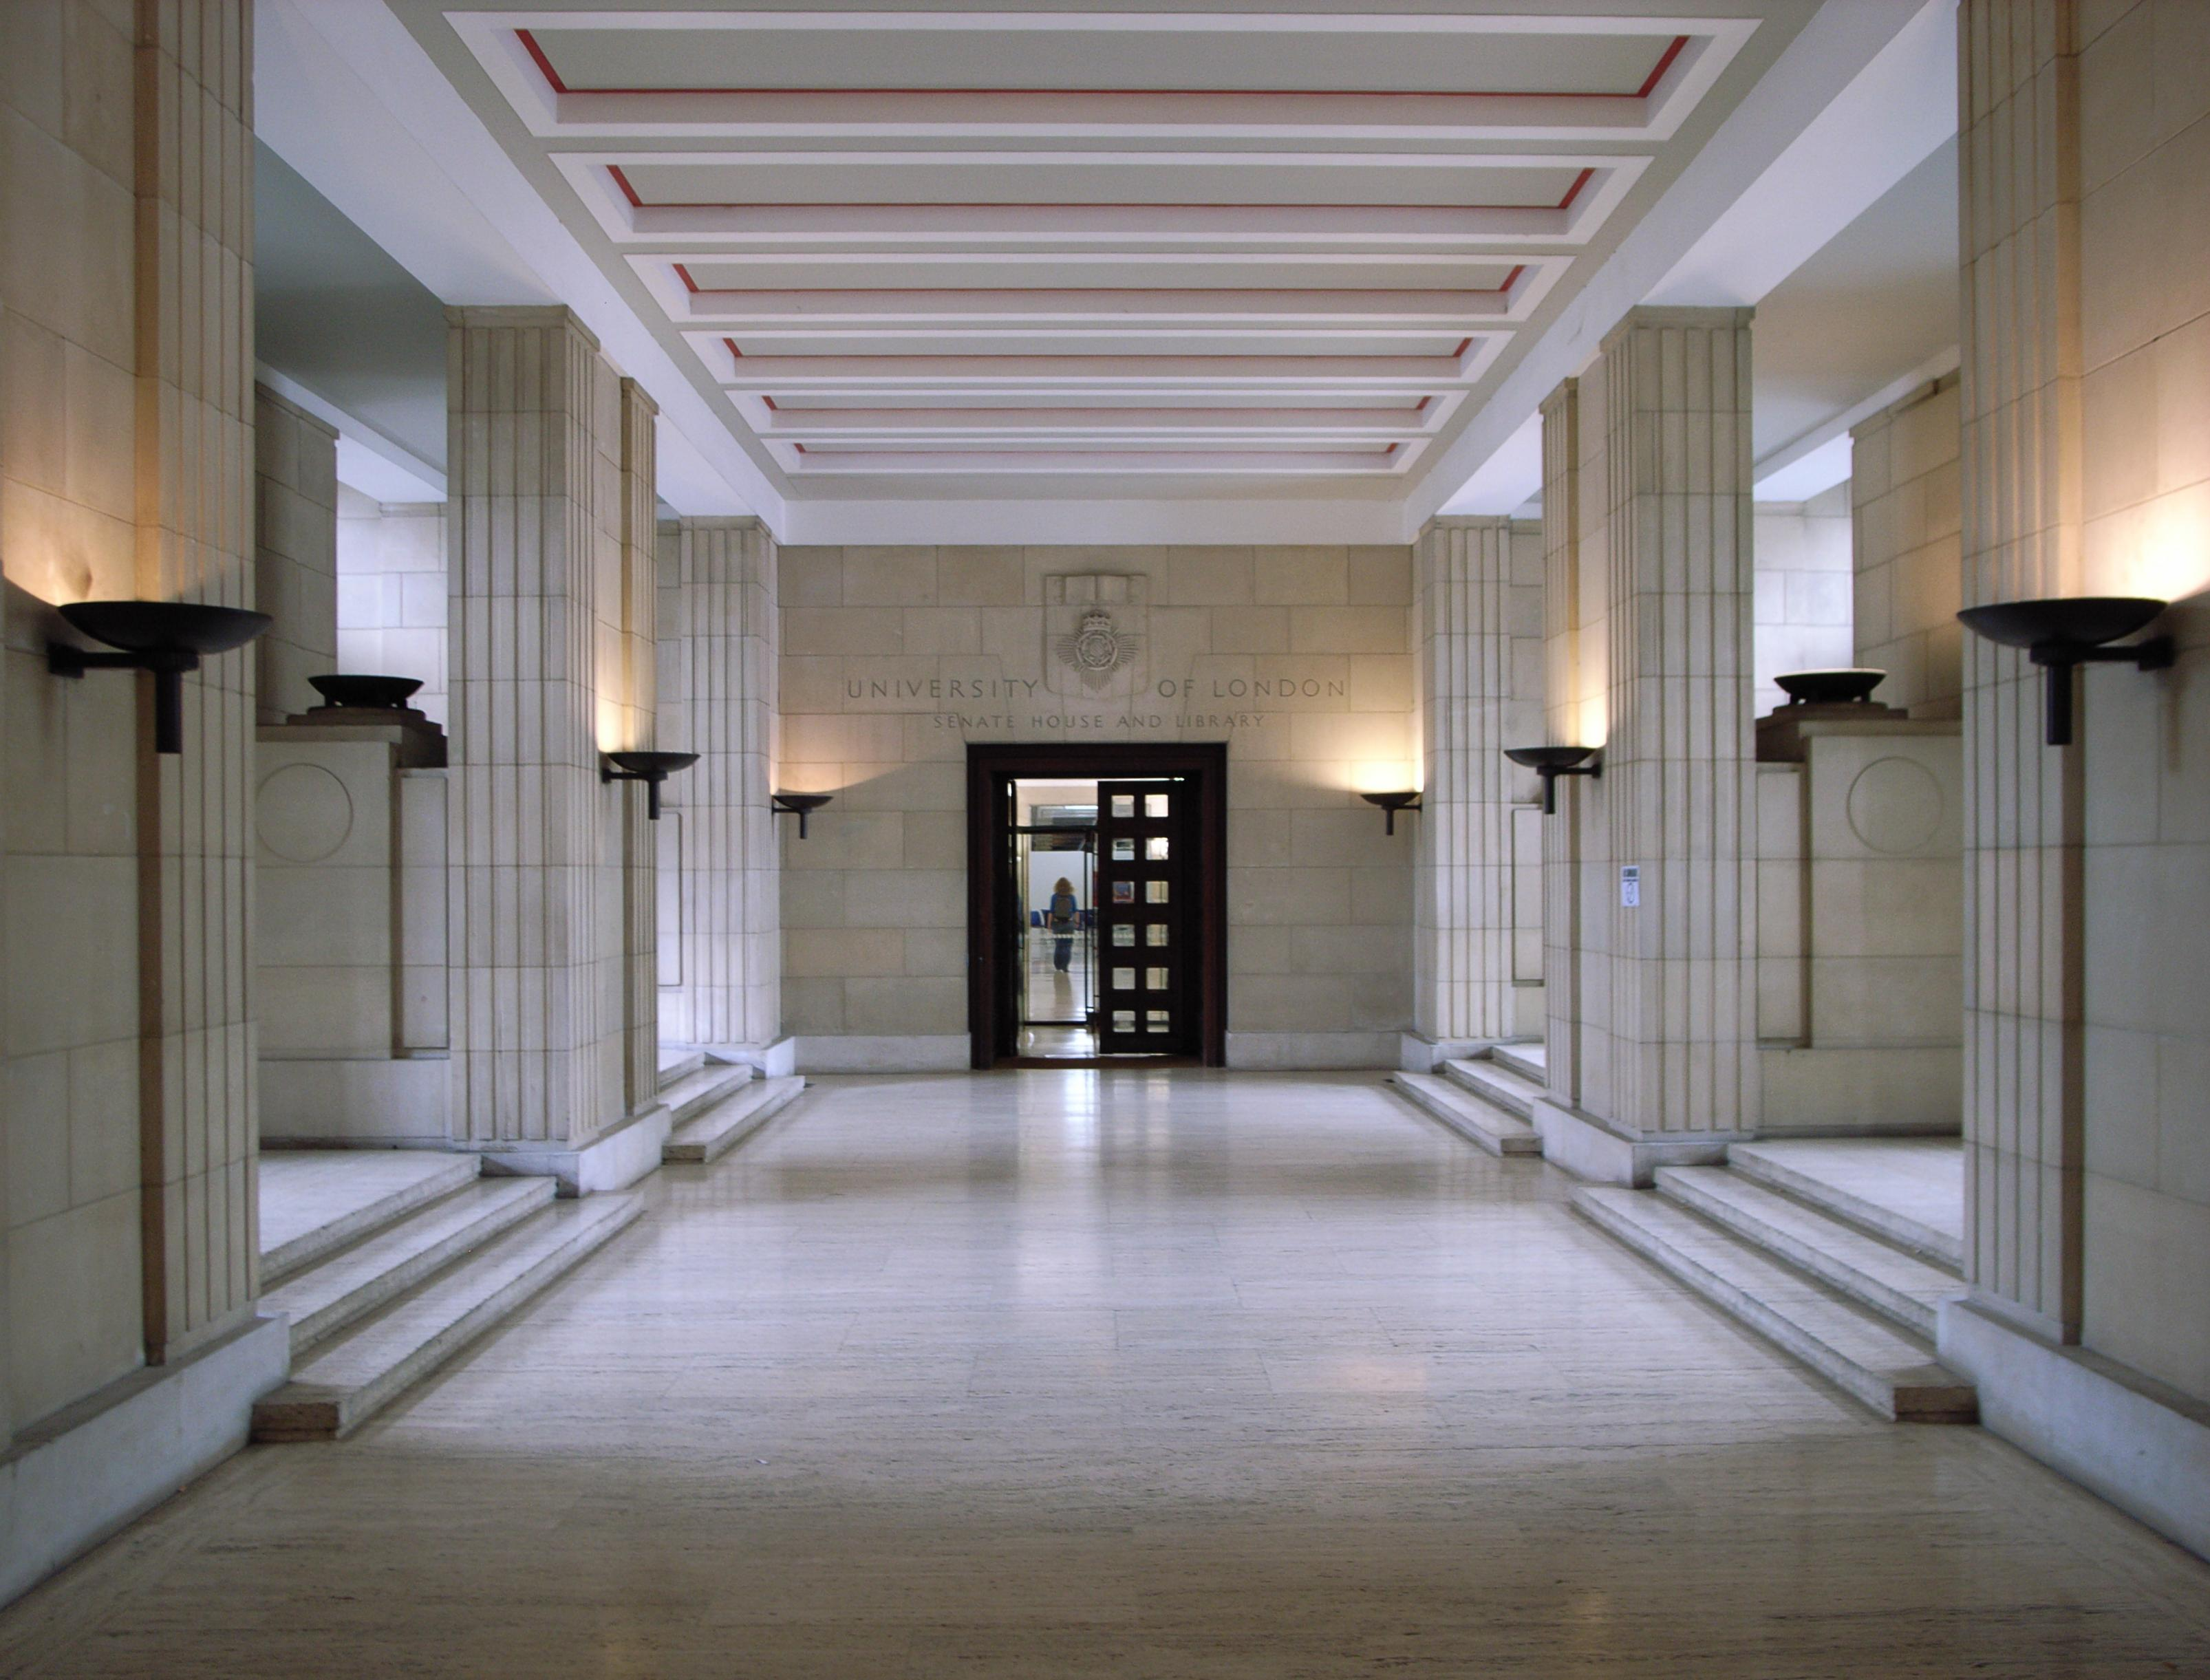 File:Inside Senate House.jpg - Wikimedia Commons